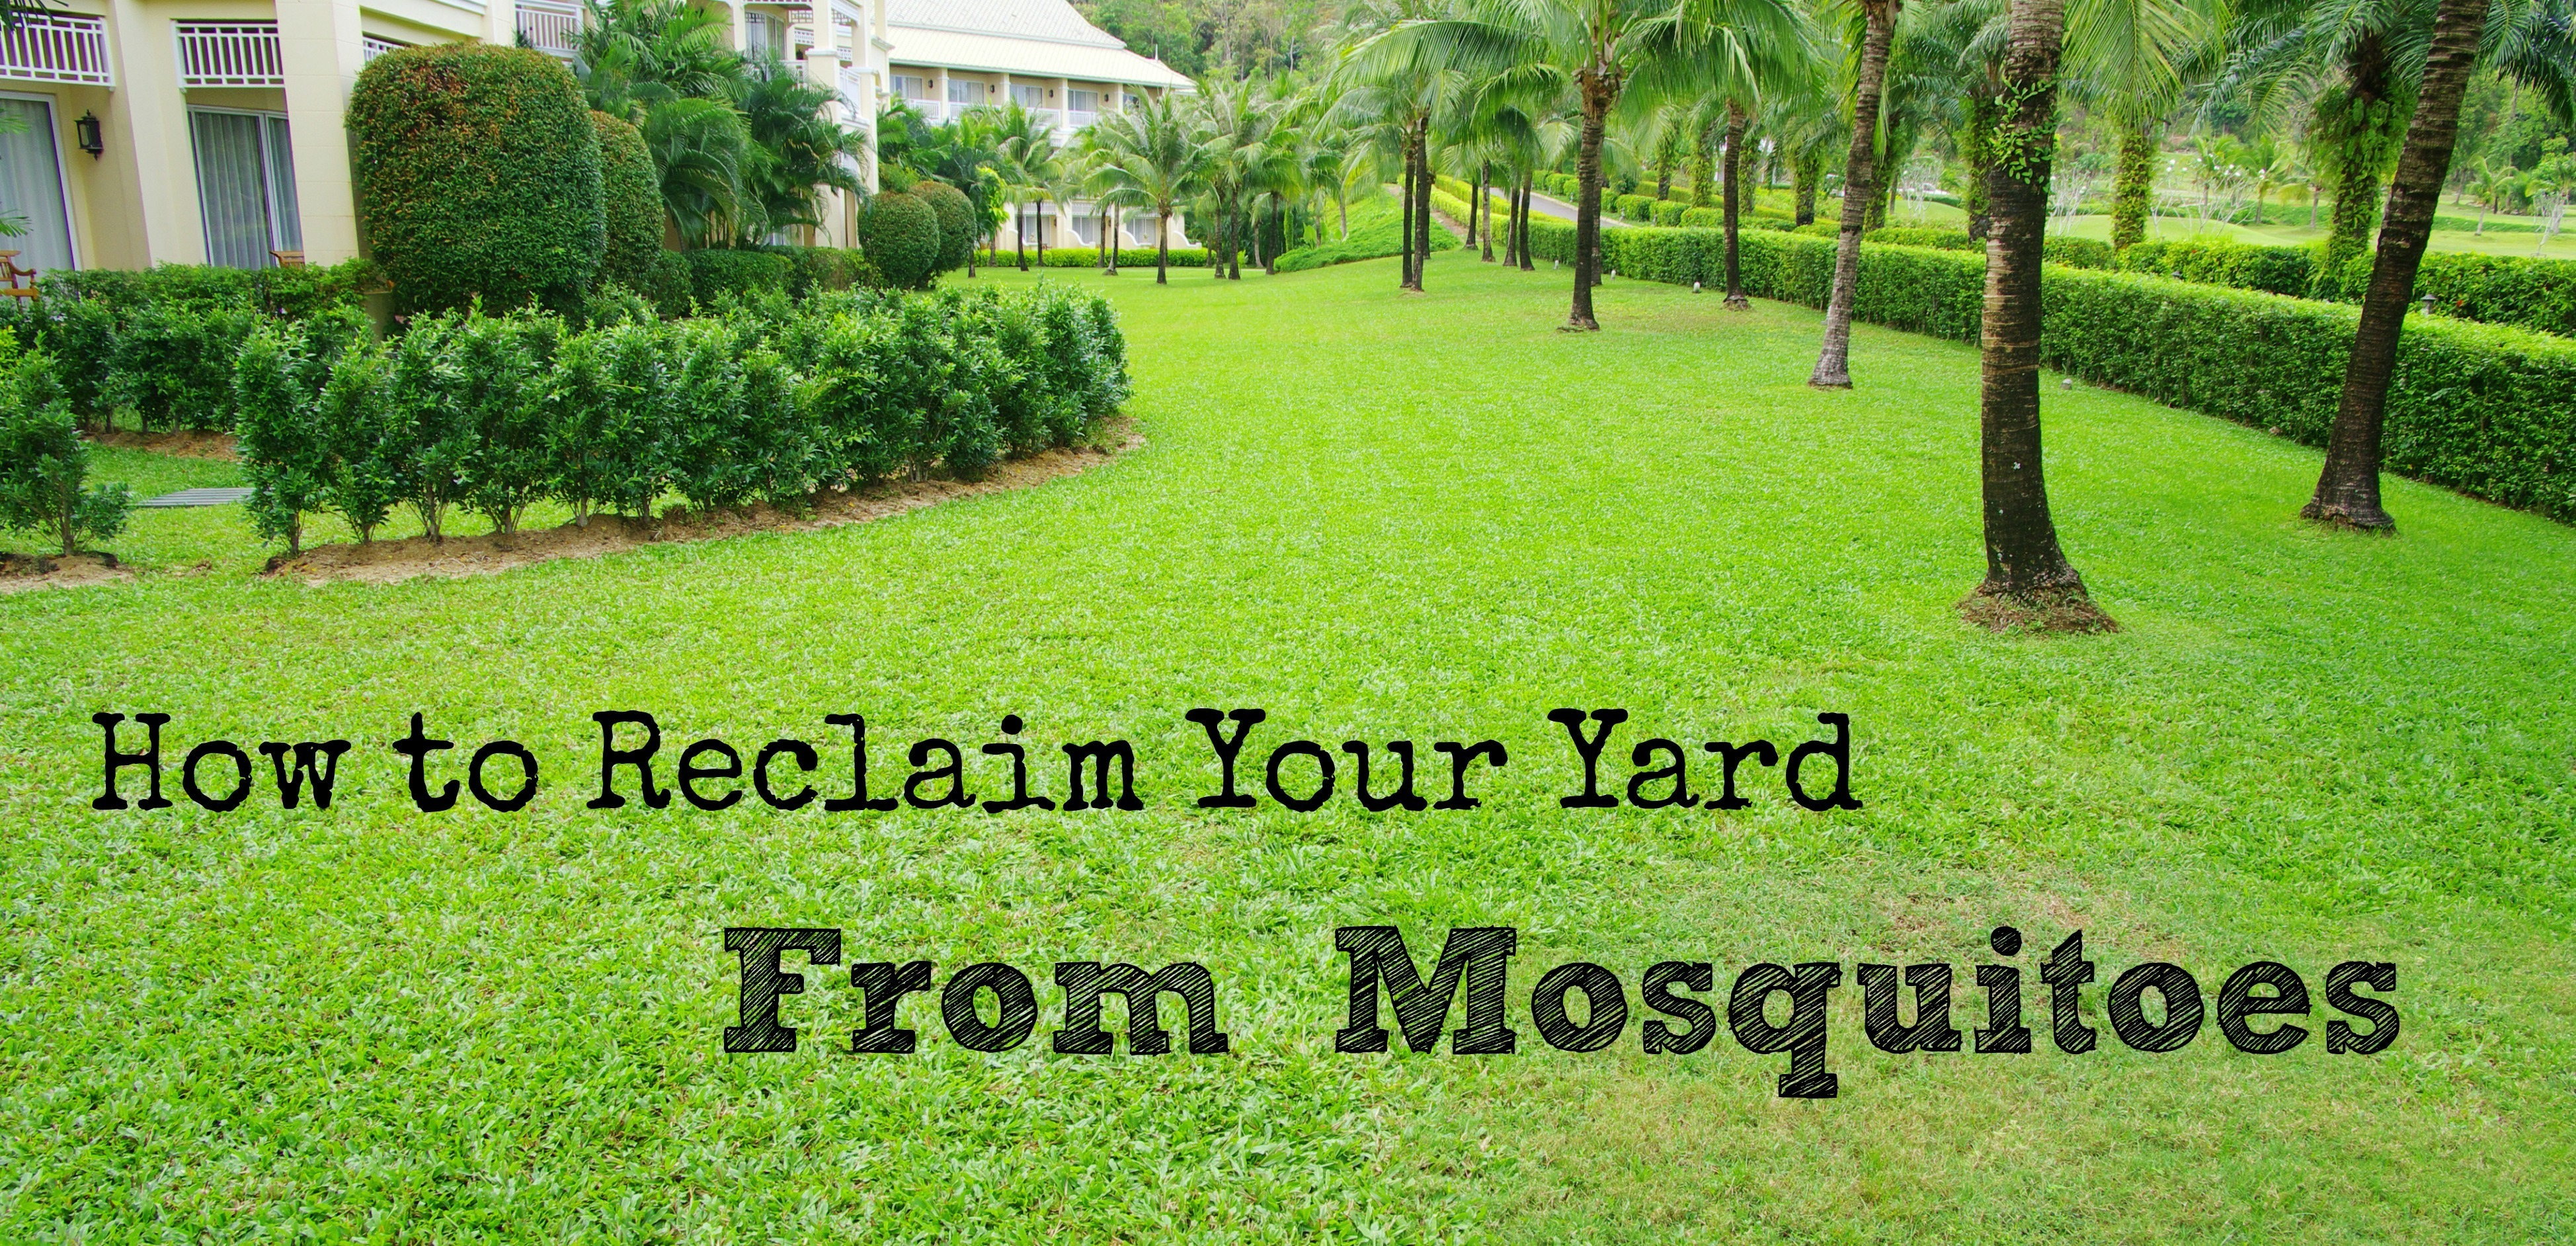 Reclaim Your Yard From Mosquitoes